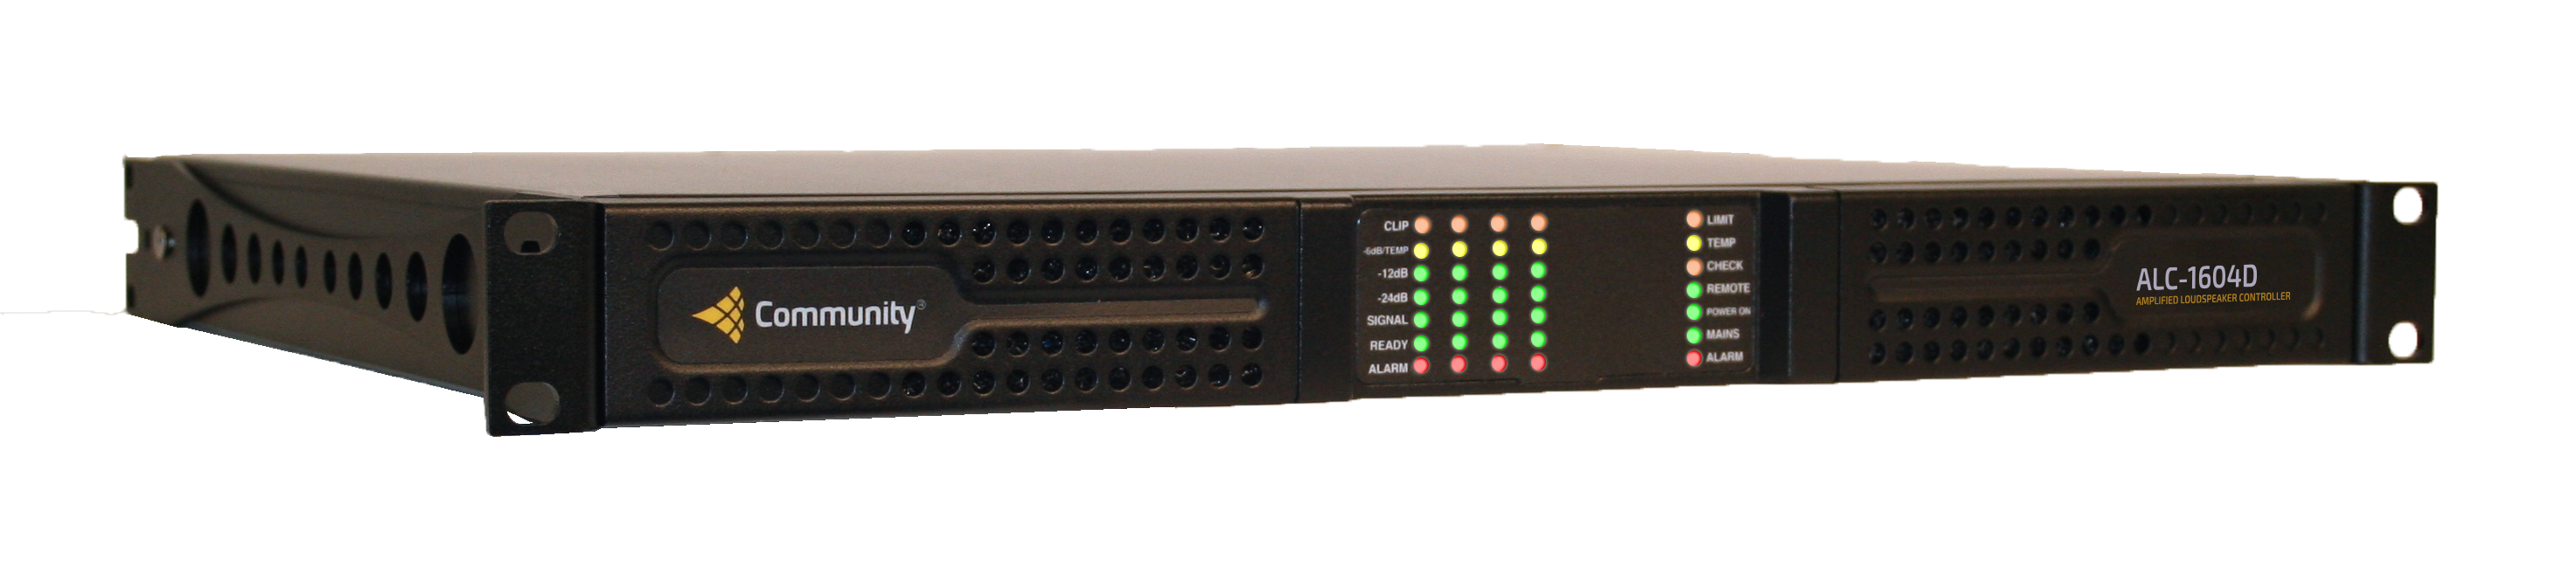 ALC-1604D 4 Channels x 1600W + DSP and Dante